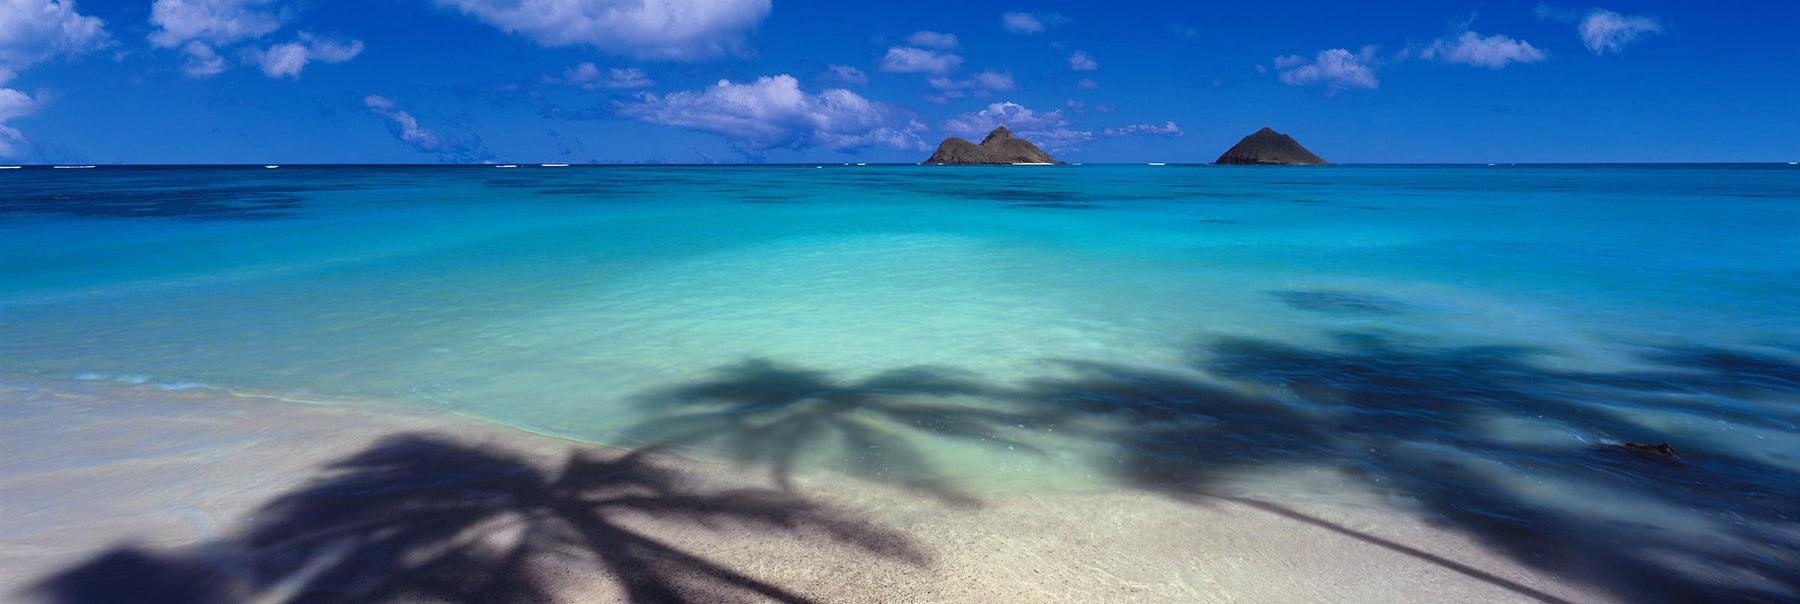 Palm tree shadows on the white sand beaches of Lanikai Hawaii with two islands in the background